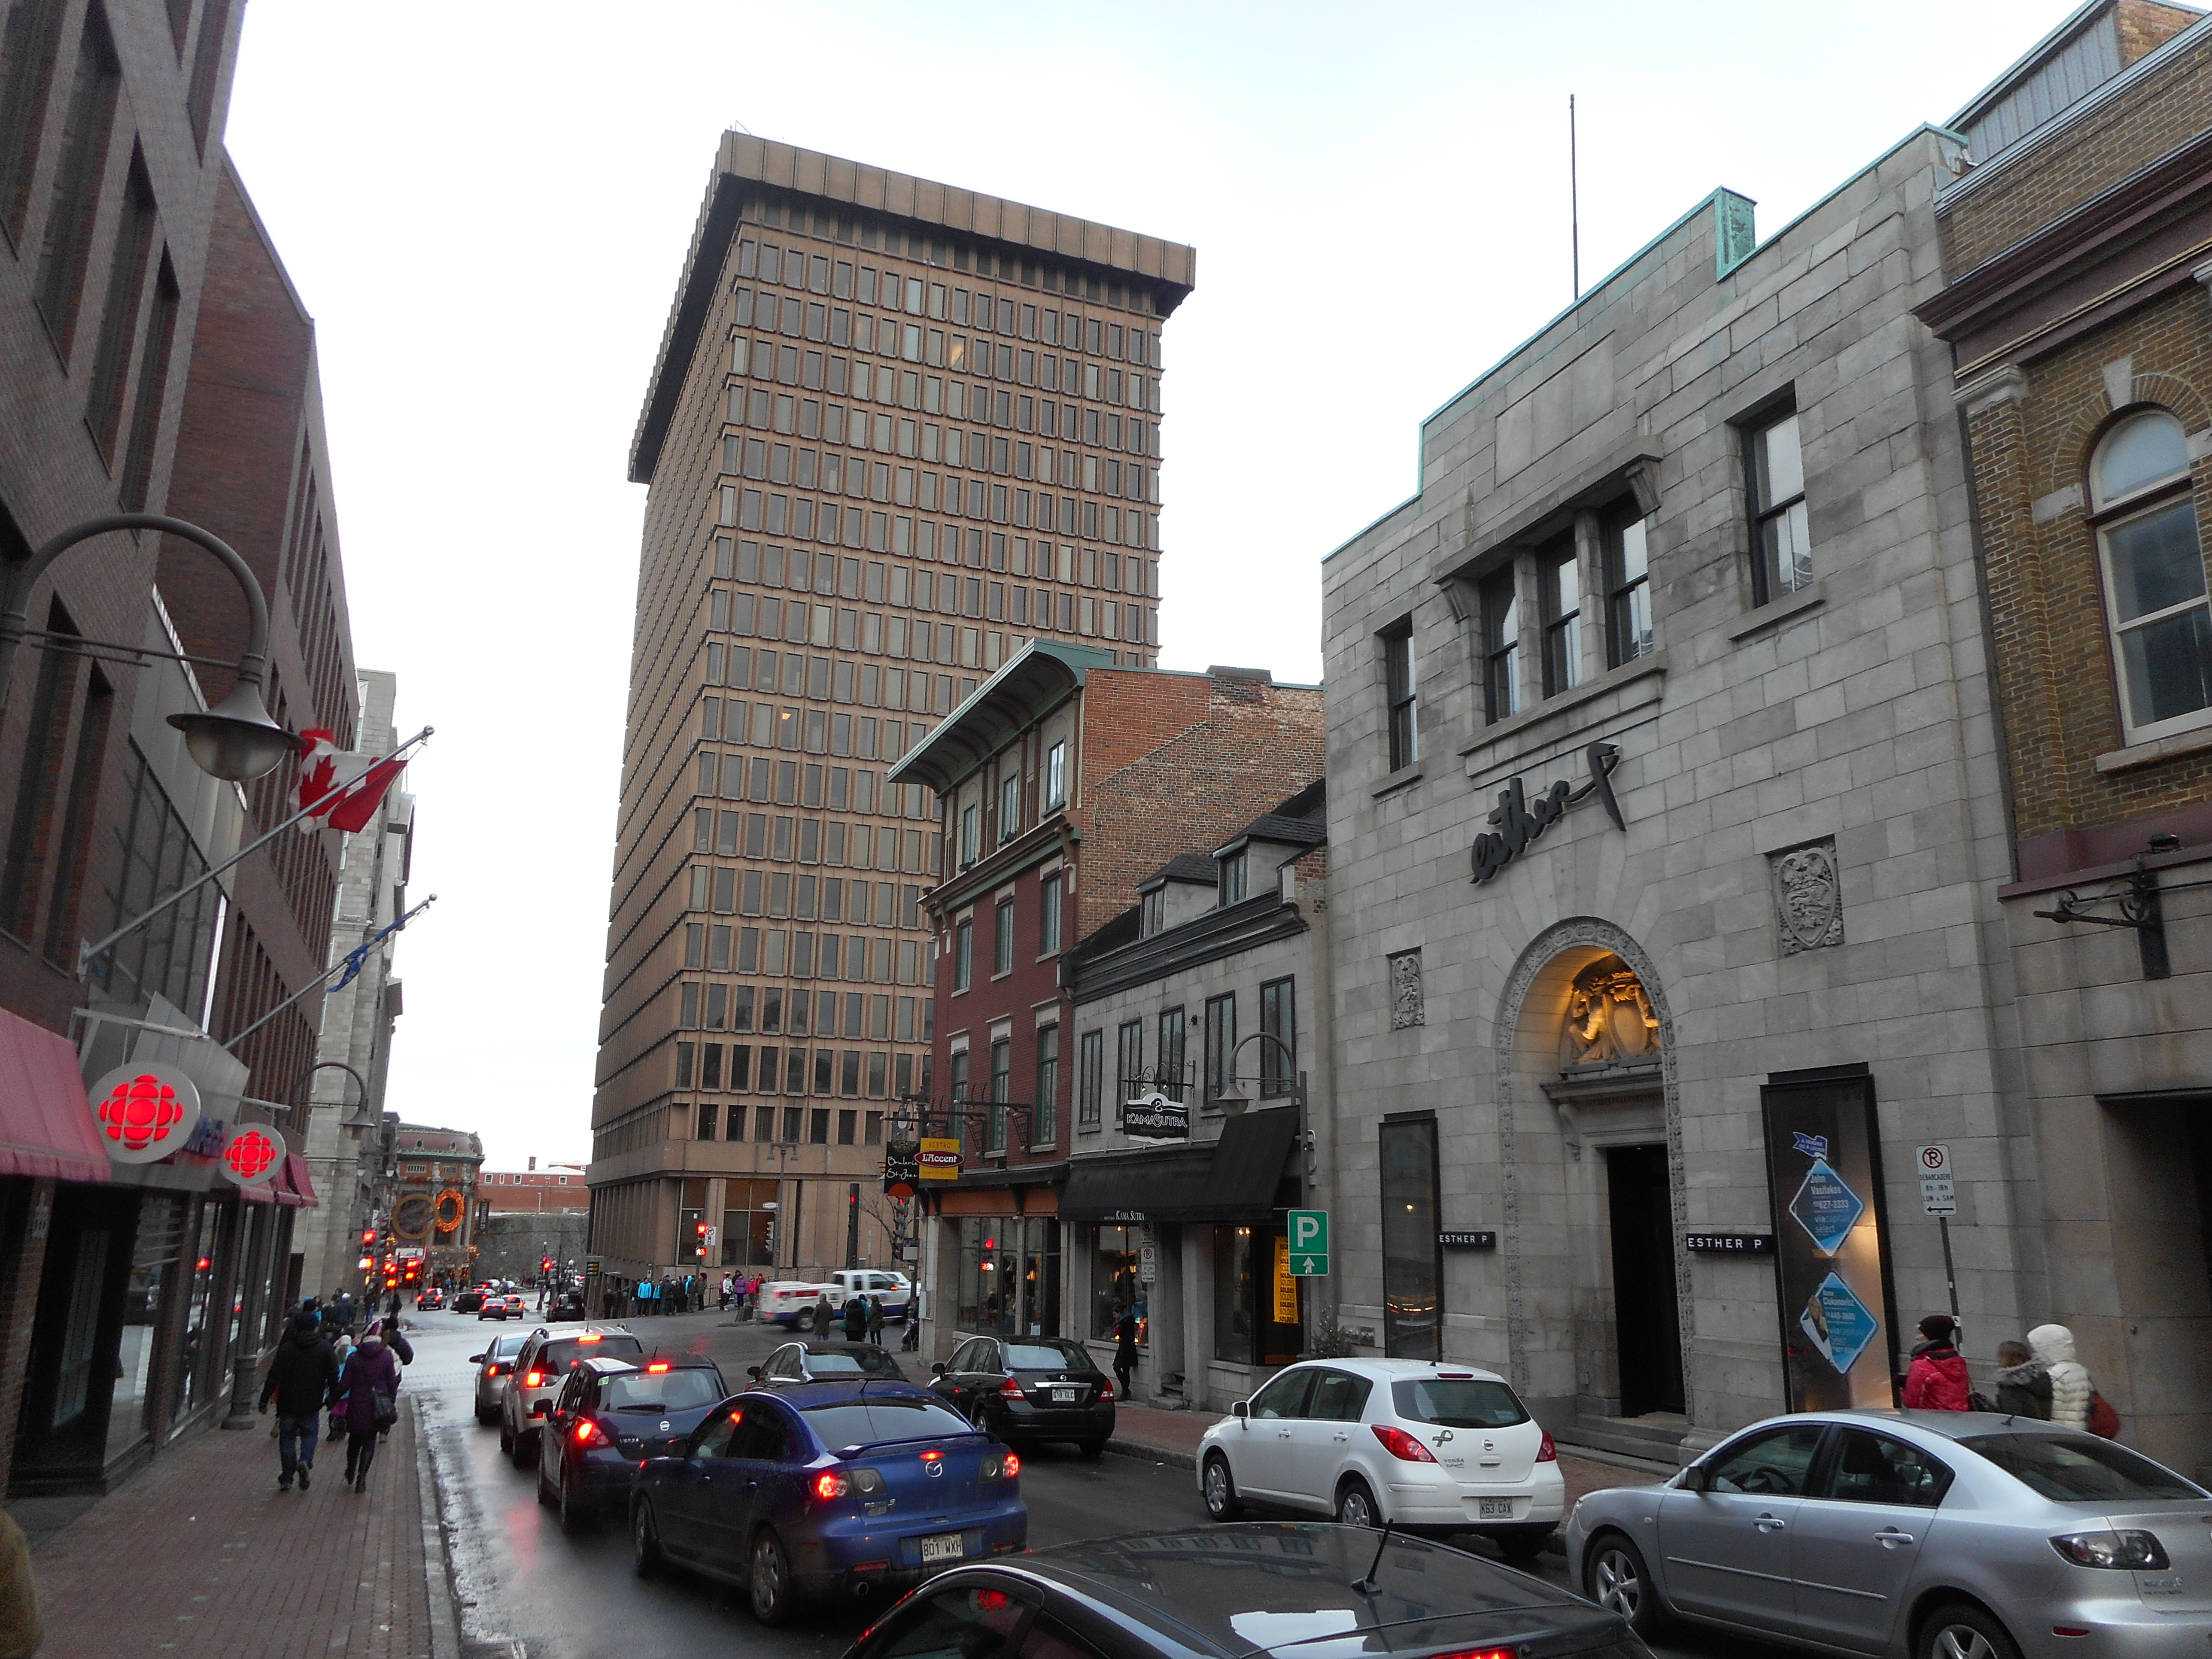 Location Quebec File:873, Rue Saint-jean 02.jpg - Wikimedia Commons